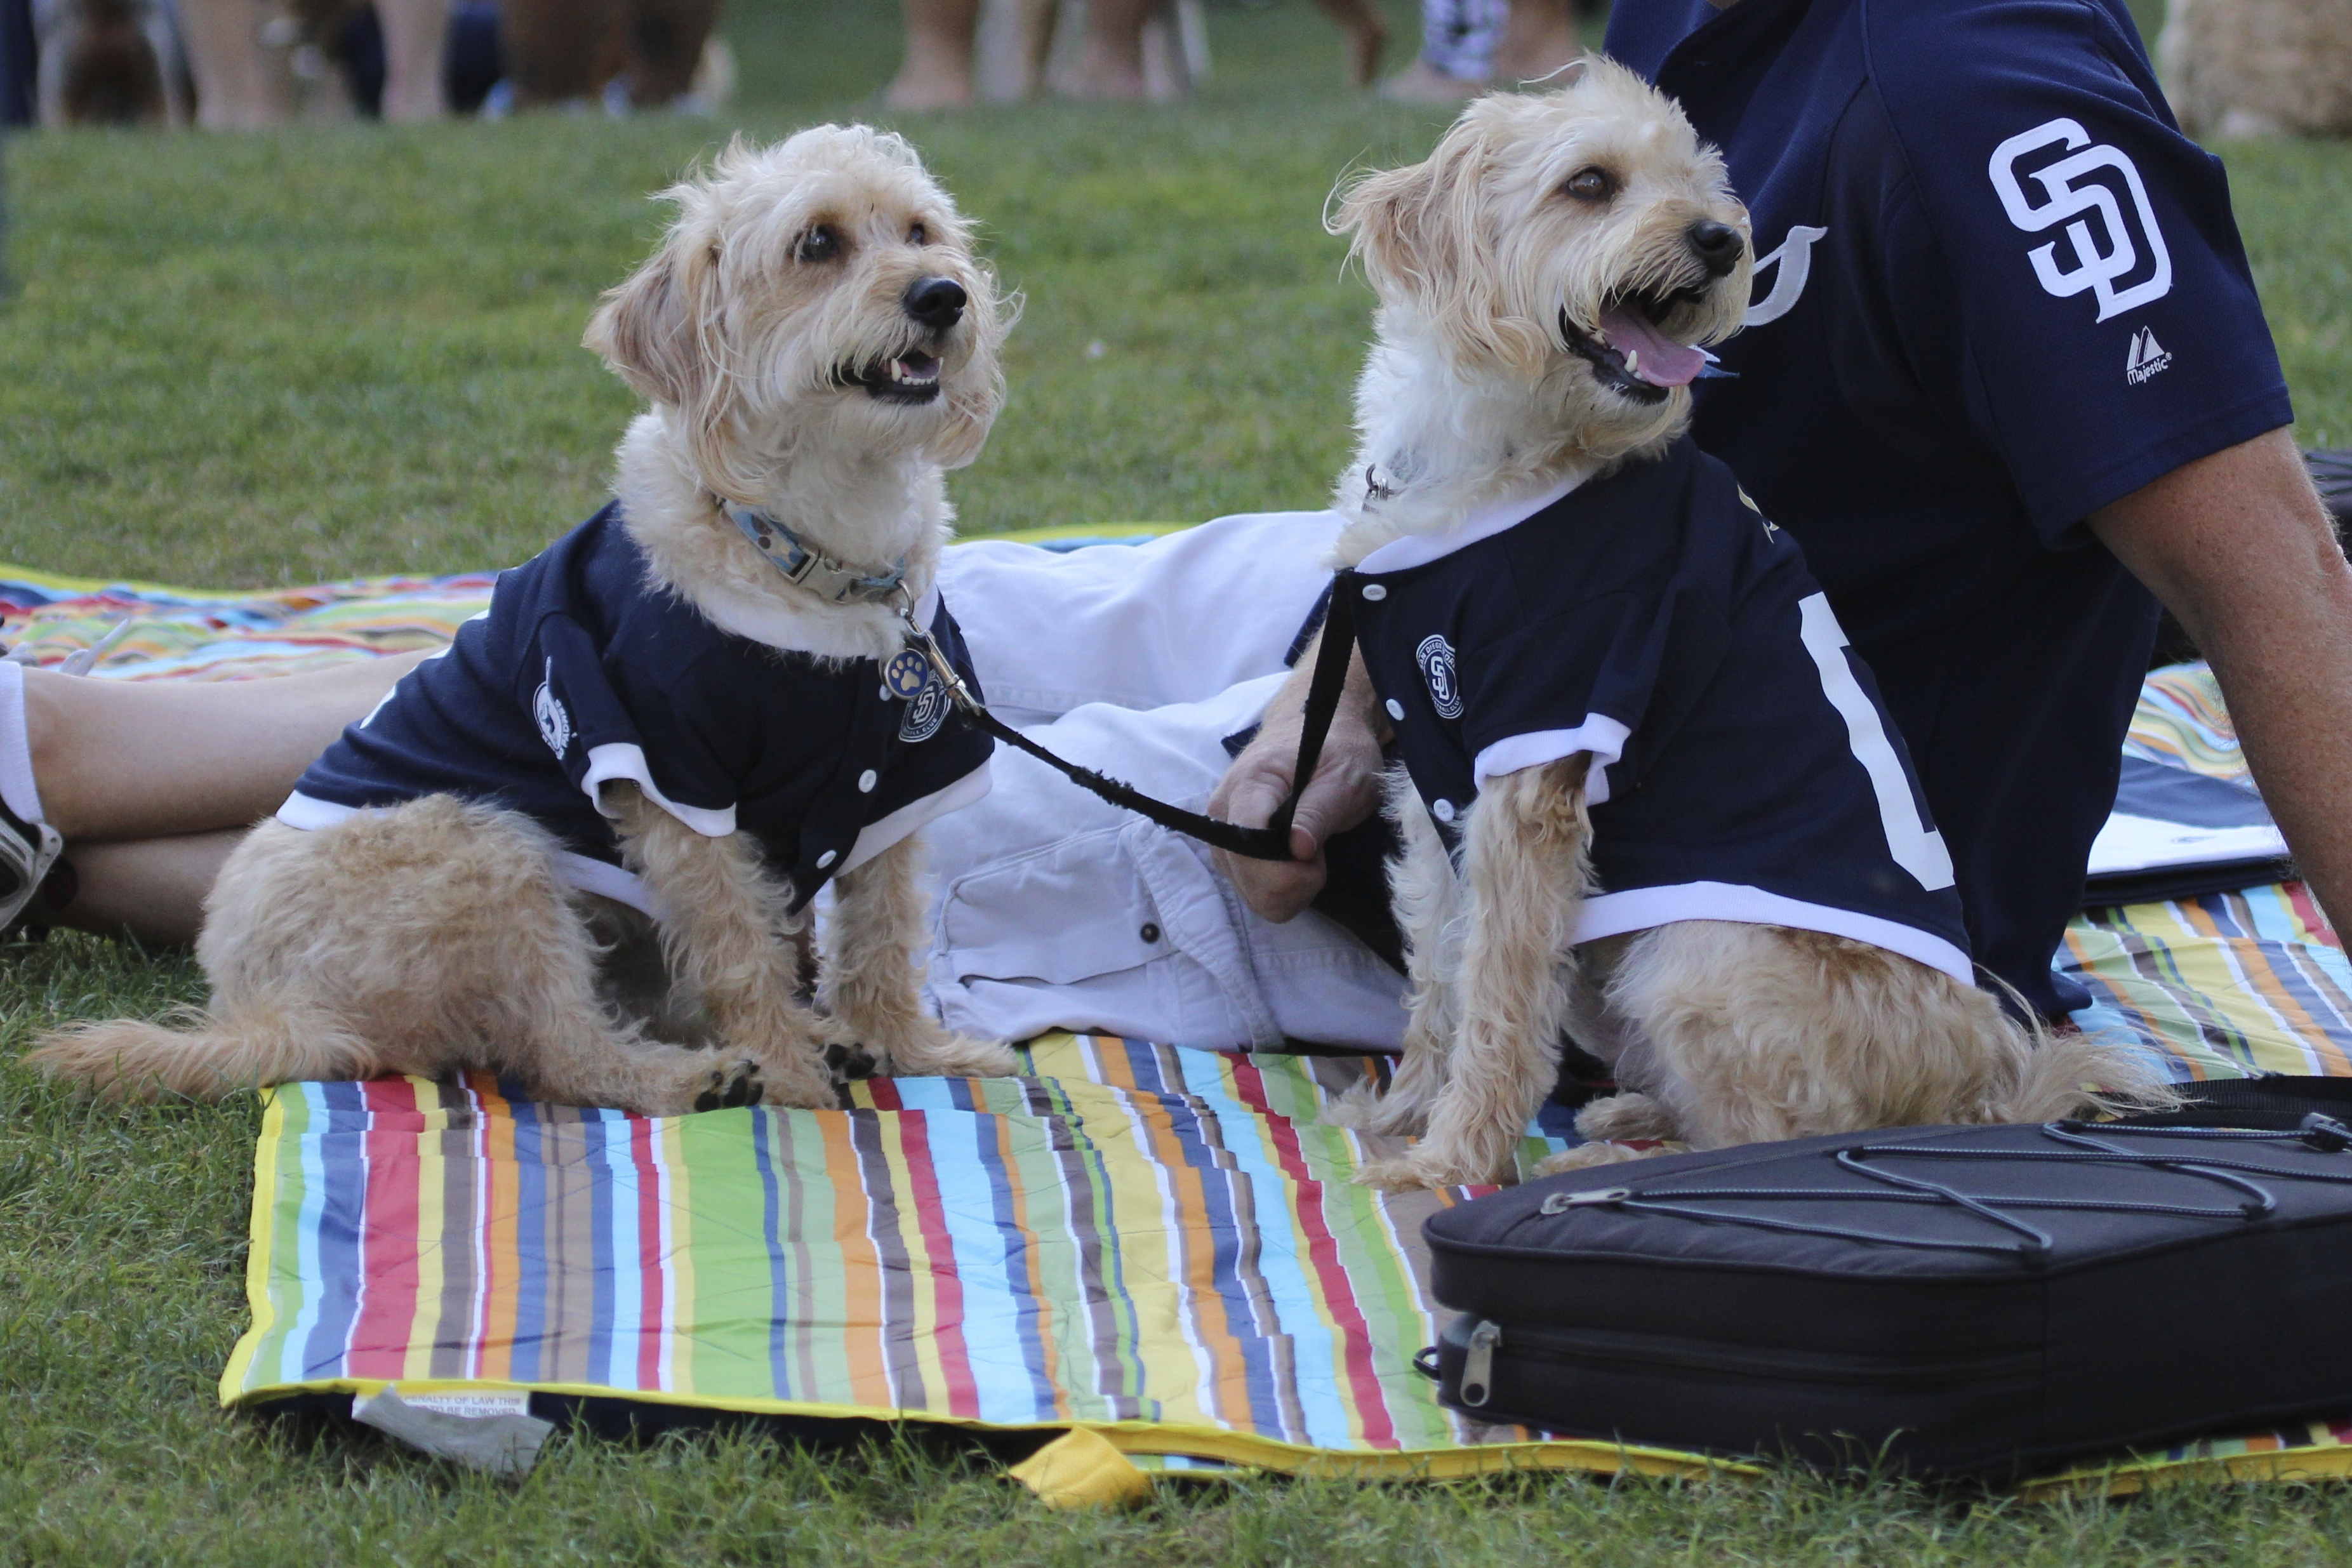 San Diego Happy Dogs | Best Dog Days of Summer at Petco Park